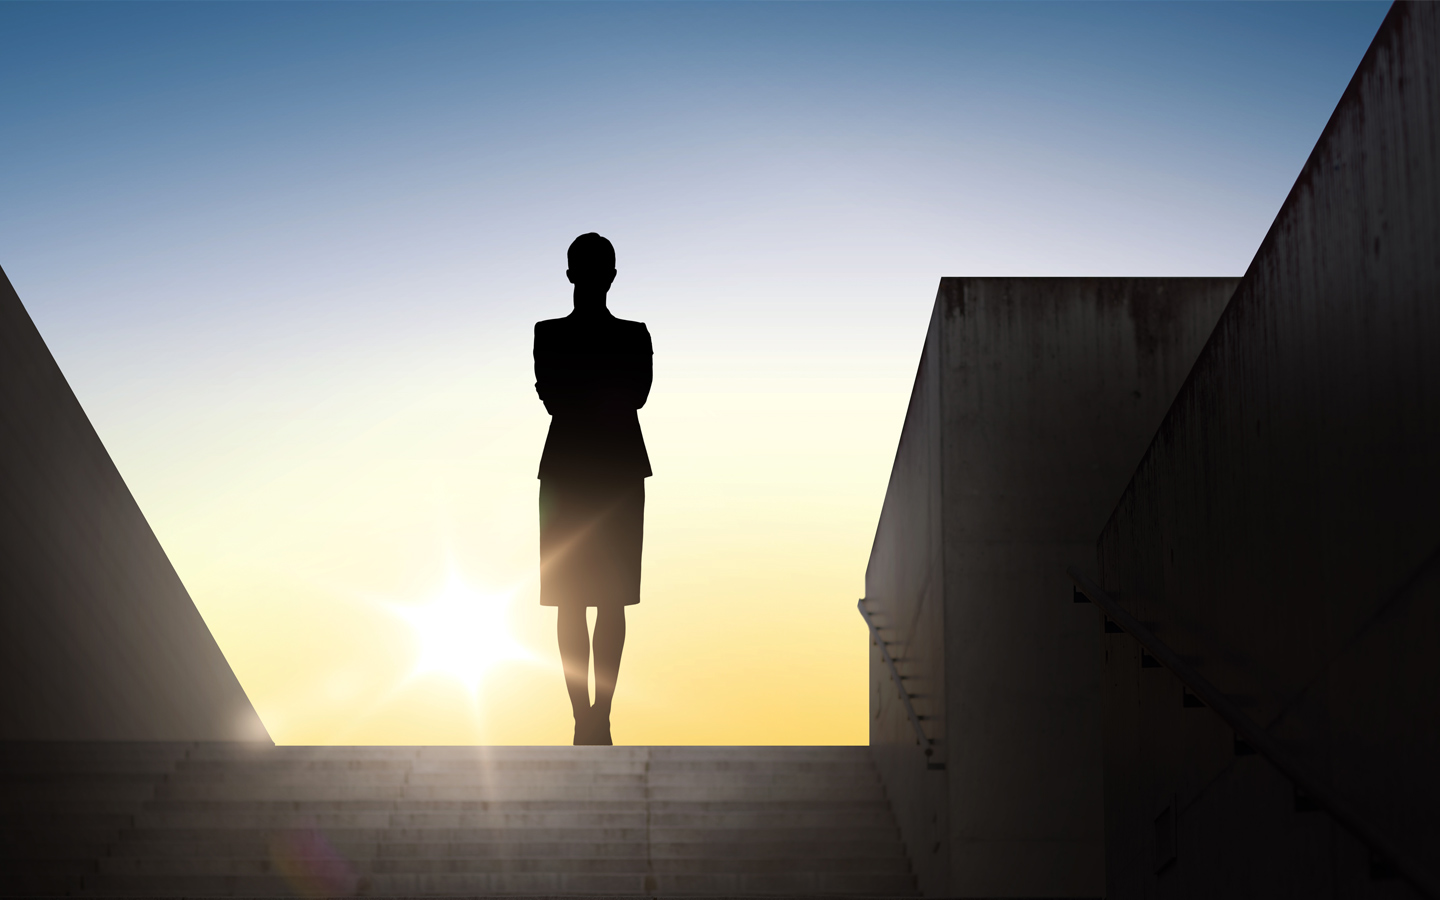 Women are always the leader: An inspiring story